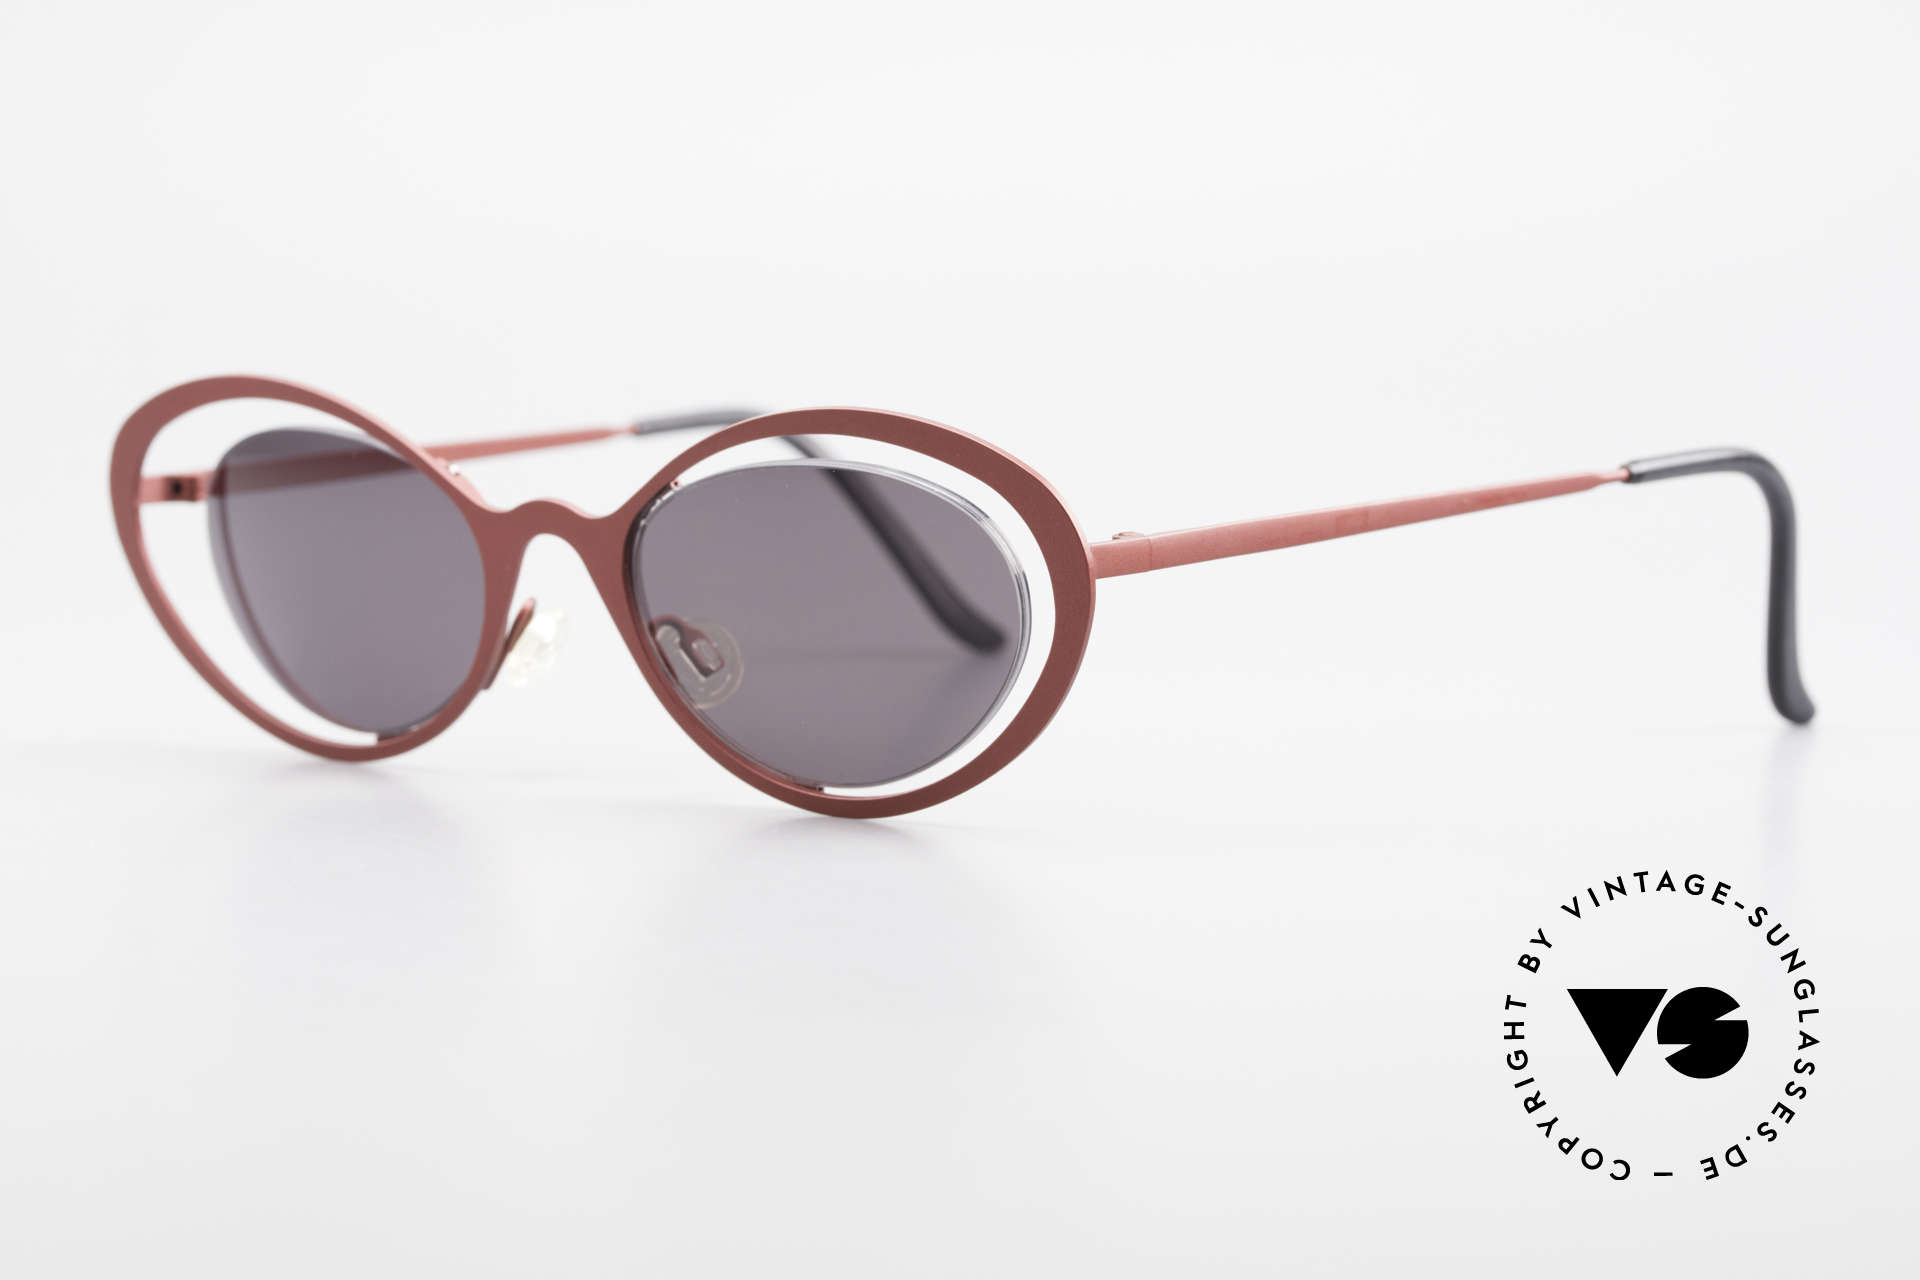 Theo Belgium LuLu Rimless Cateye Shades 90's, lenses are fixed with a nylor thread (Cat's eye style), Made for Women